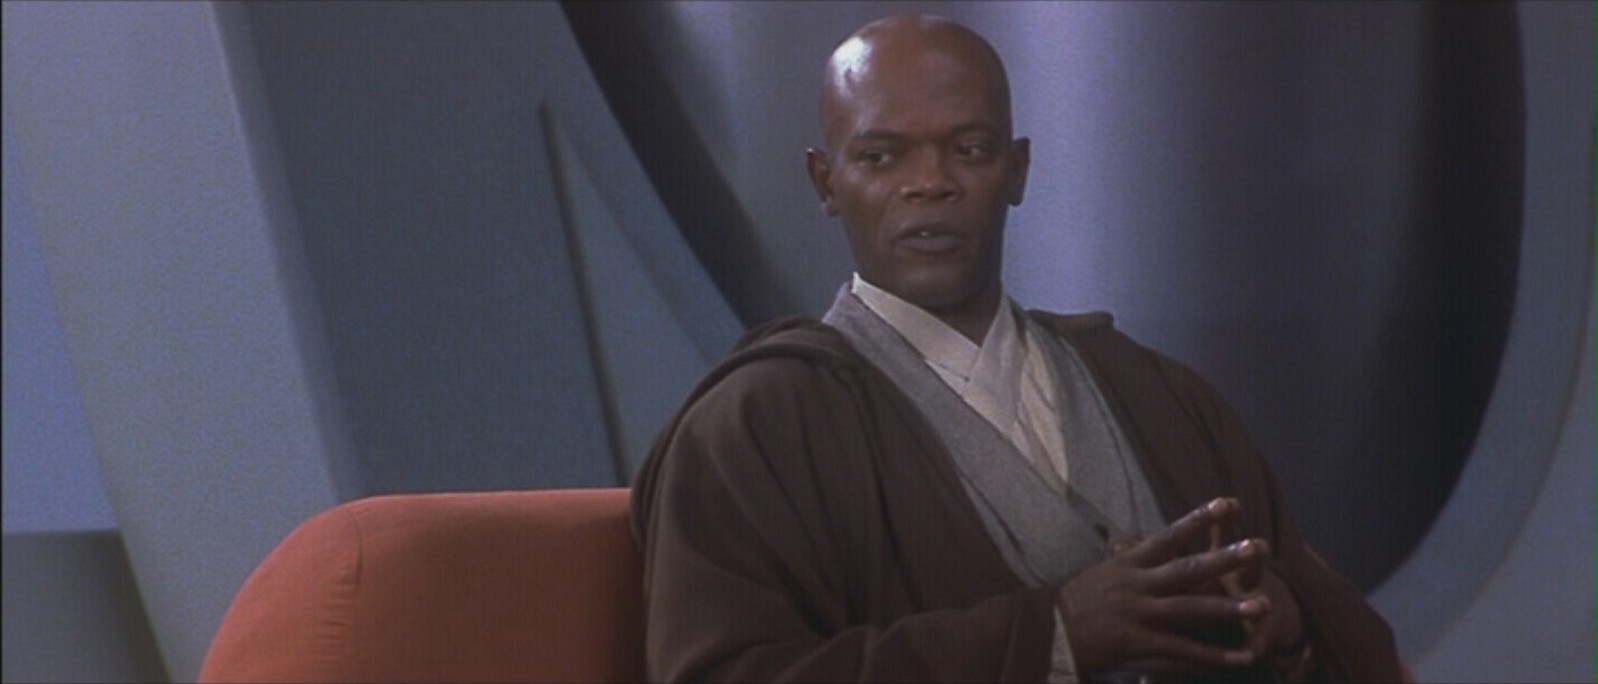 Mace Windu images screencap HD wallpaper and background photos 1598x684